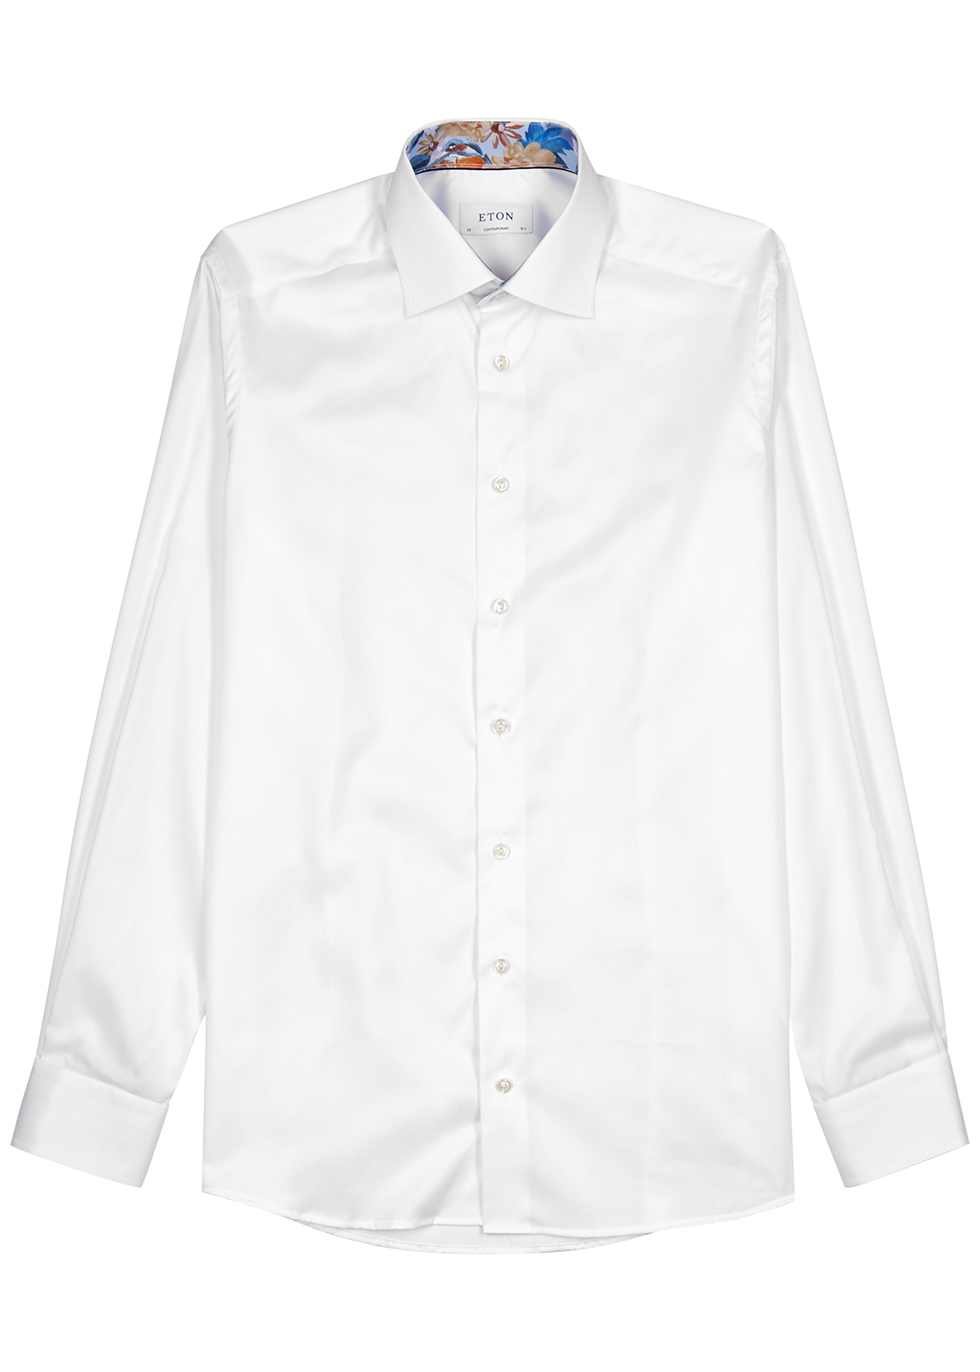 White contemporary cotton-blend shirt